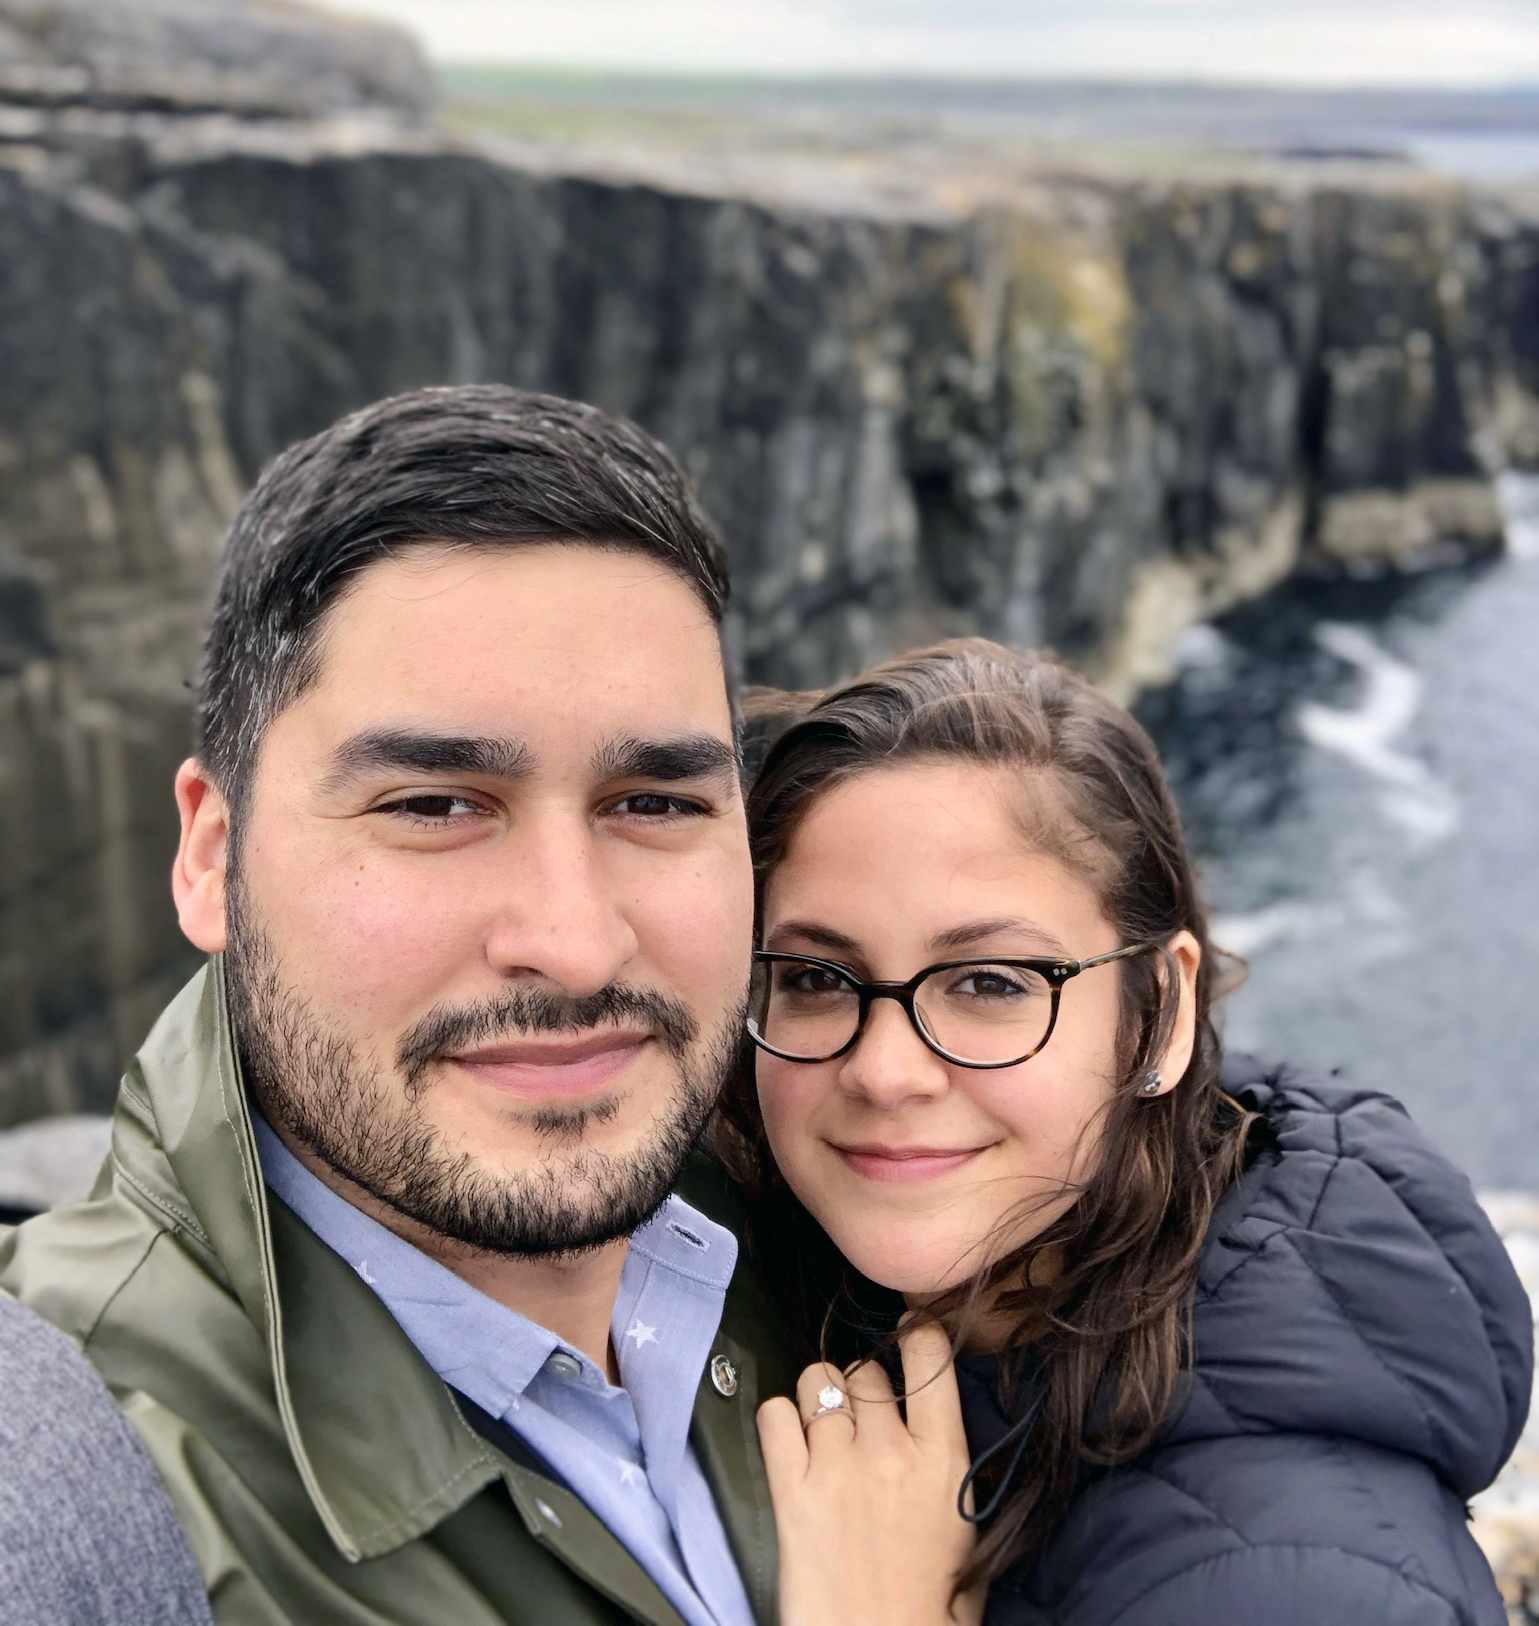 Cliffs of Moher in Ireland, where Andrea and Mike got engaged May 2019.